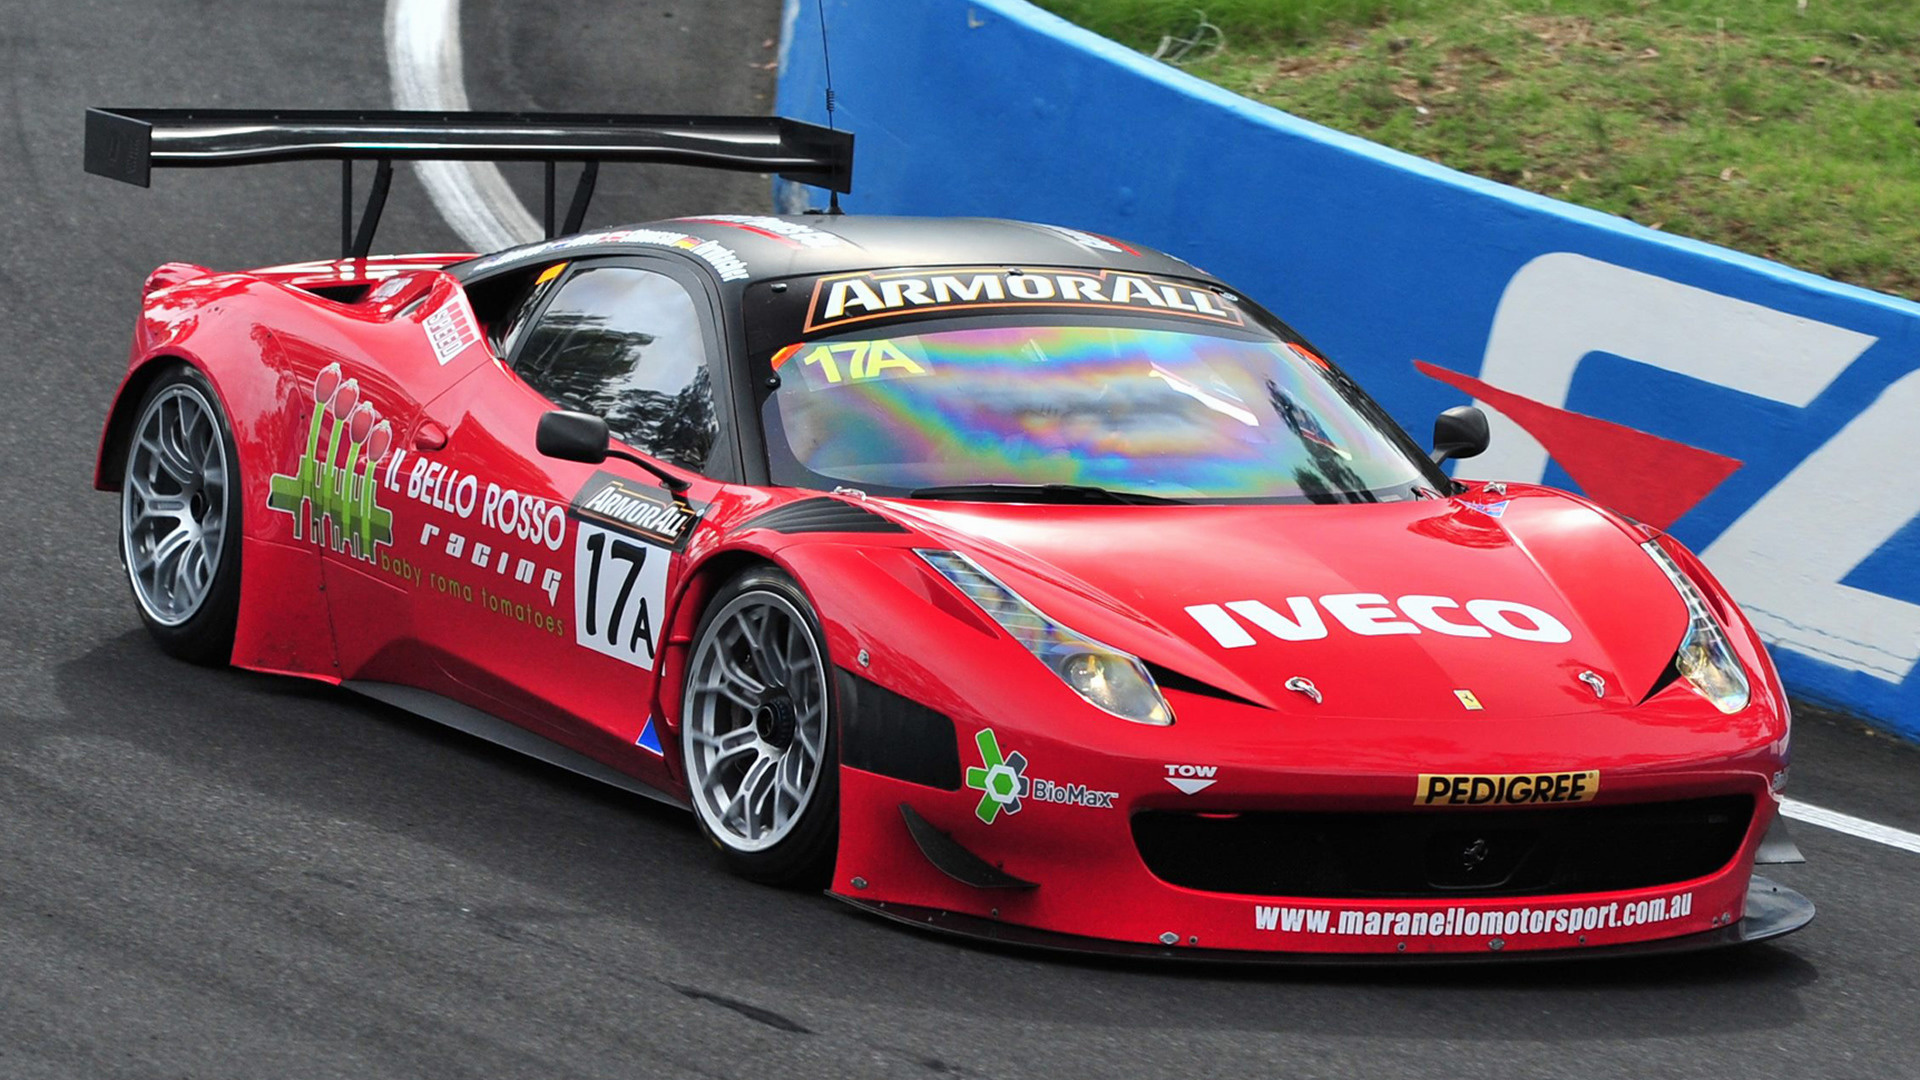 2011 Ferrari 458 Italia Gt3 Wallpapers And Hd Images Wallpaper De Cityconnectapps